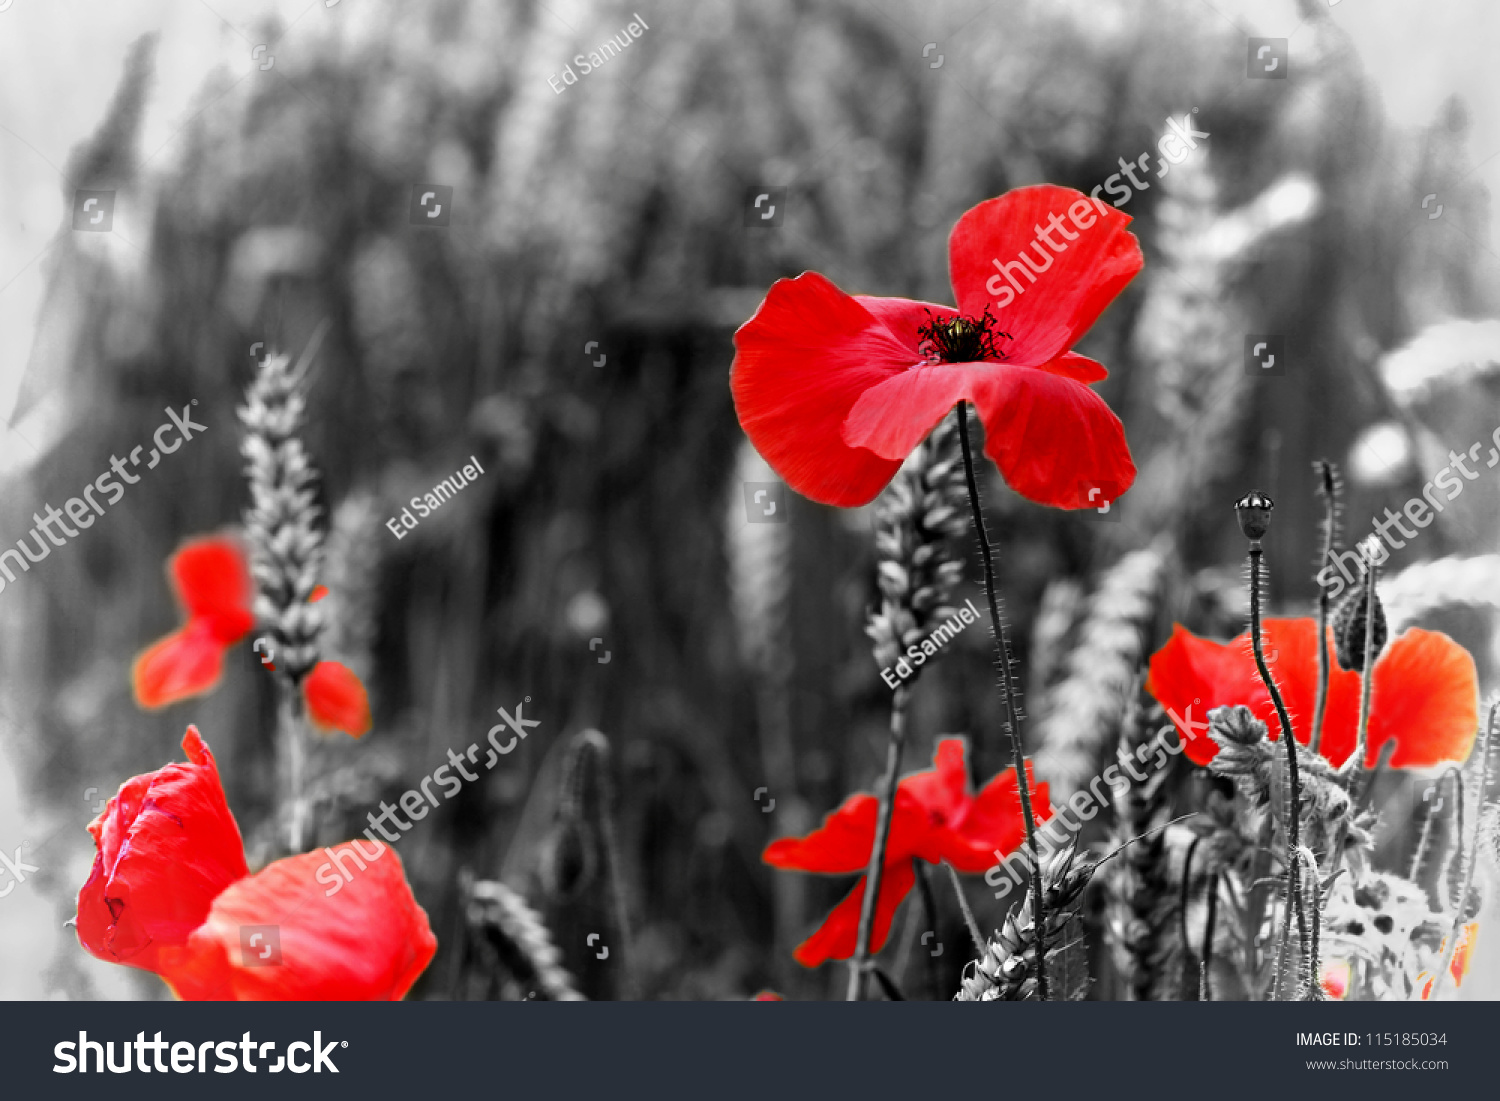 Poppy red poppy flower symbol war stock foto 115185034 shutterstock poppy red poppy flower symbol of war for remembrance day sunday buycottarizona